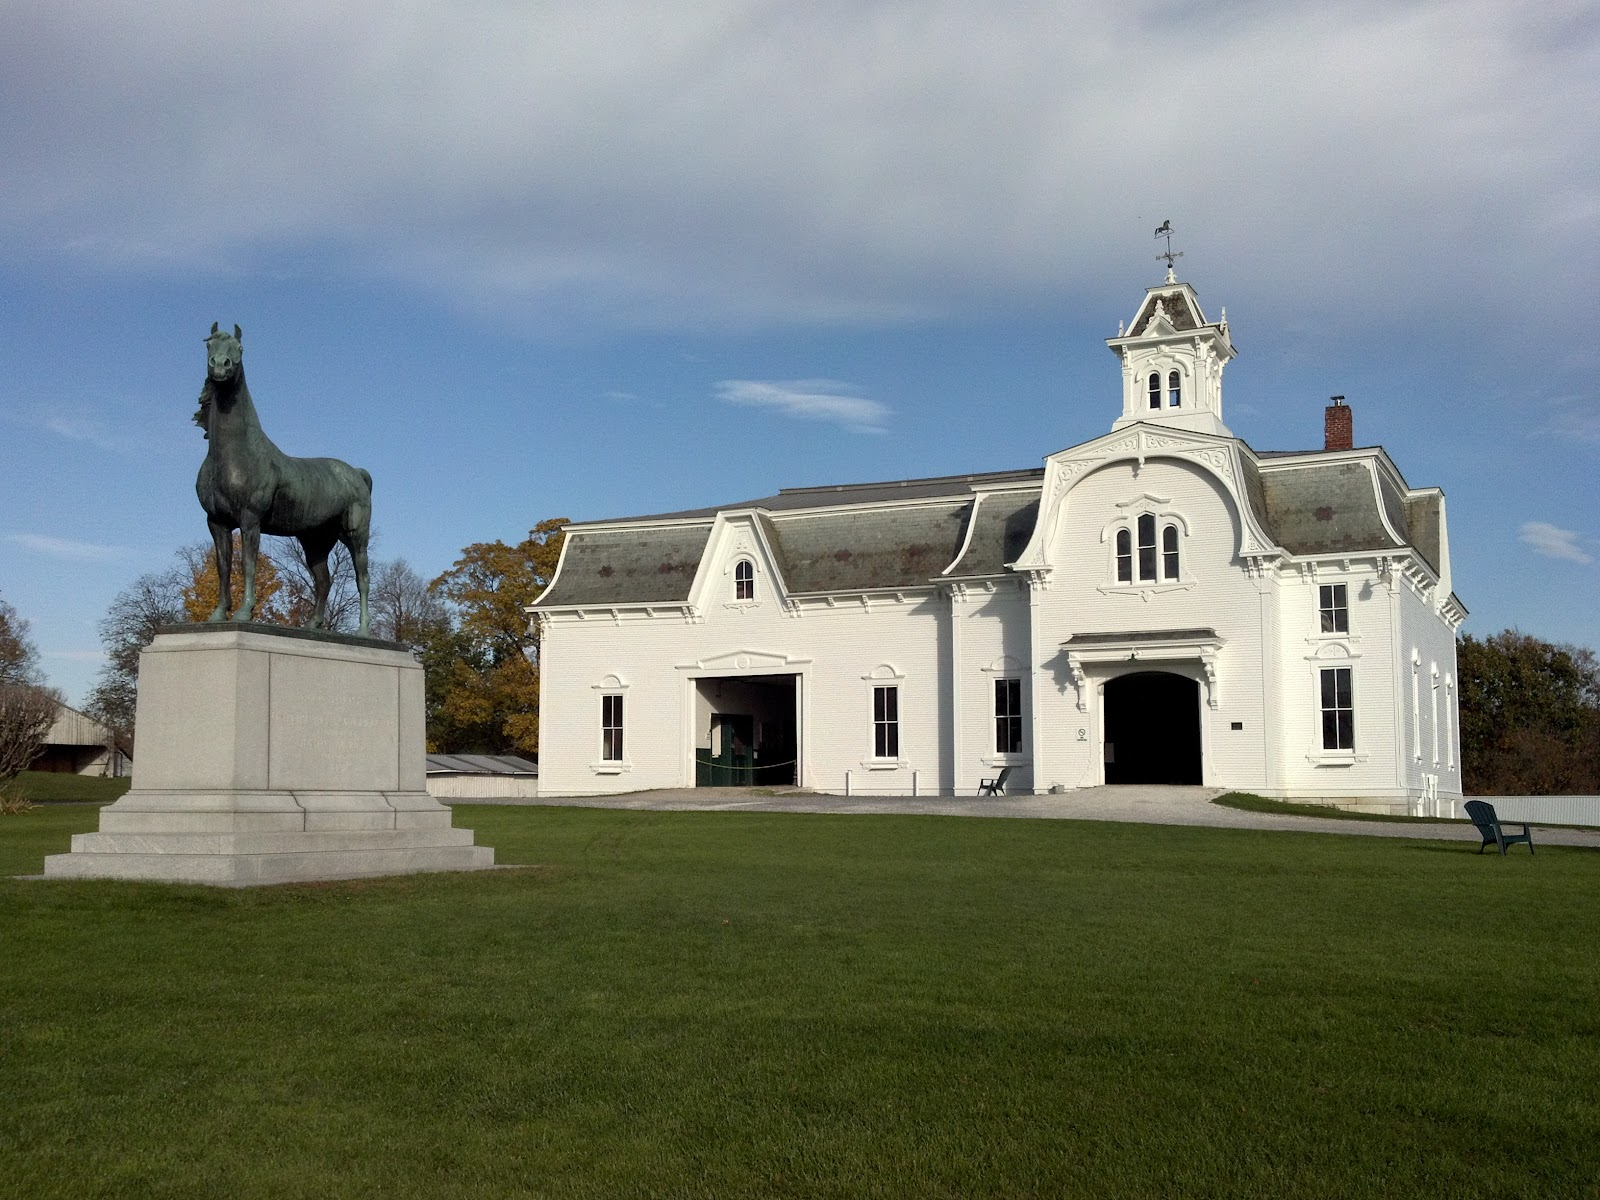 University_of_Vermont_Morgan_Horse_Farm_2012-10-18_20-19-37.jpg